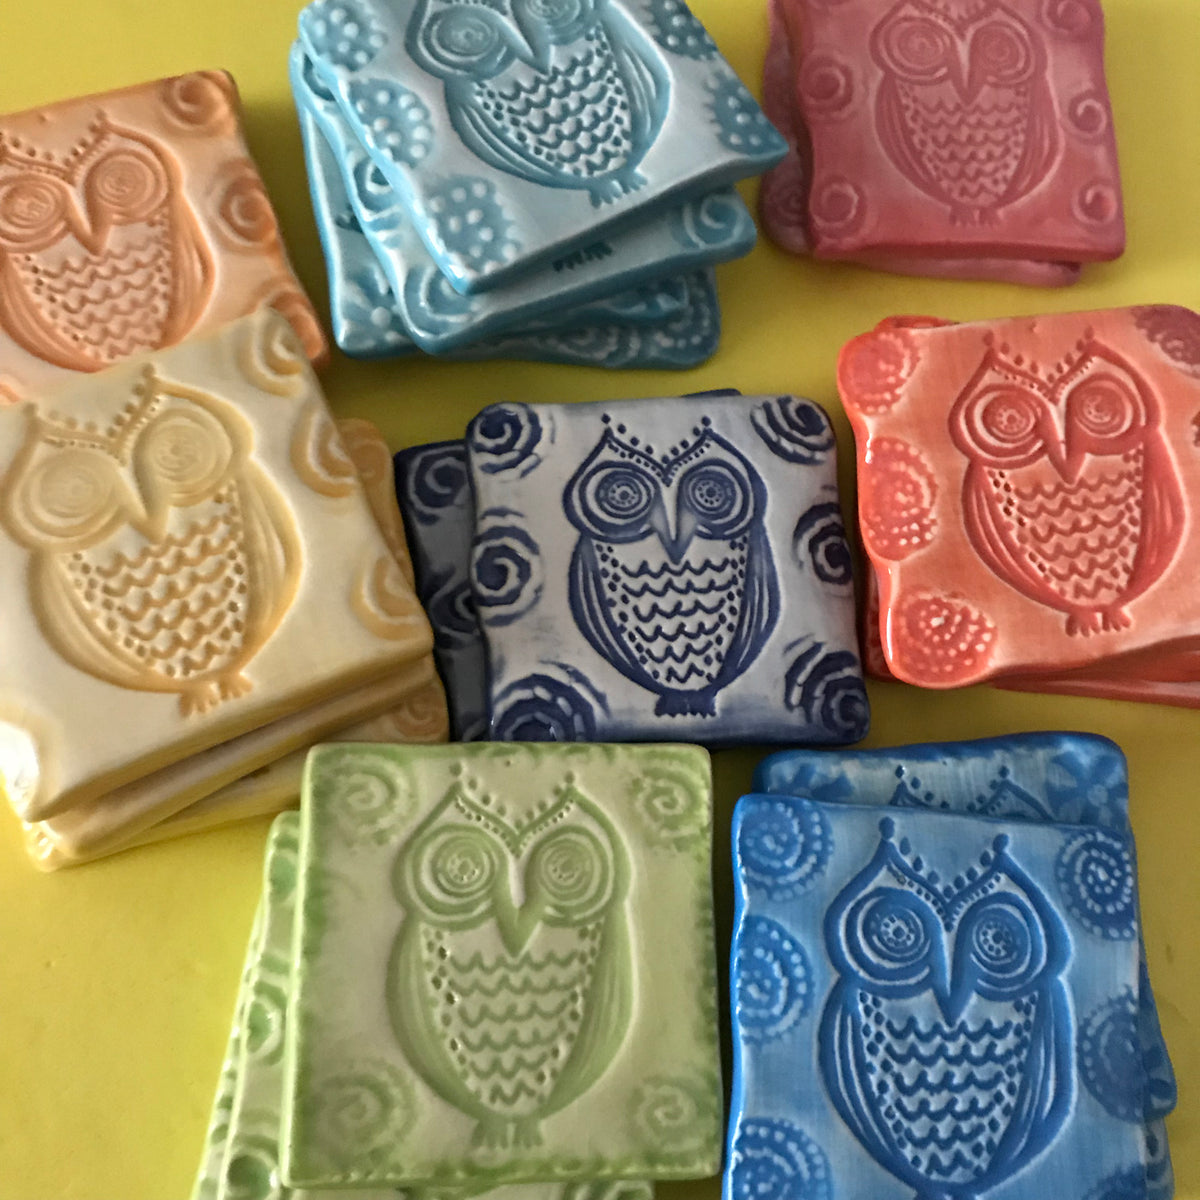 "Our Owl Magnets have a unique design which was created by Lorraine Oerth.  Each magnet is 2 x 2"", crafted from potter's clay, and comes in a variety of bright colors."